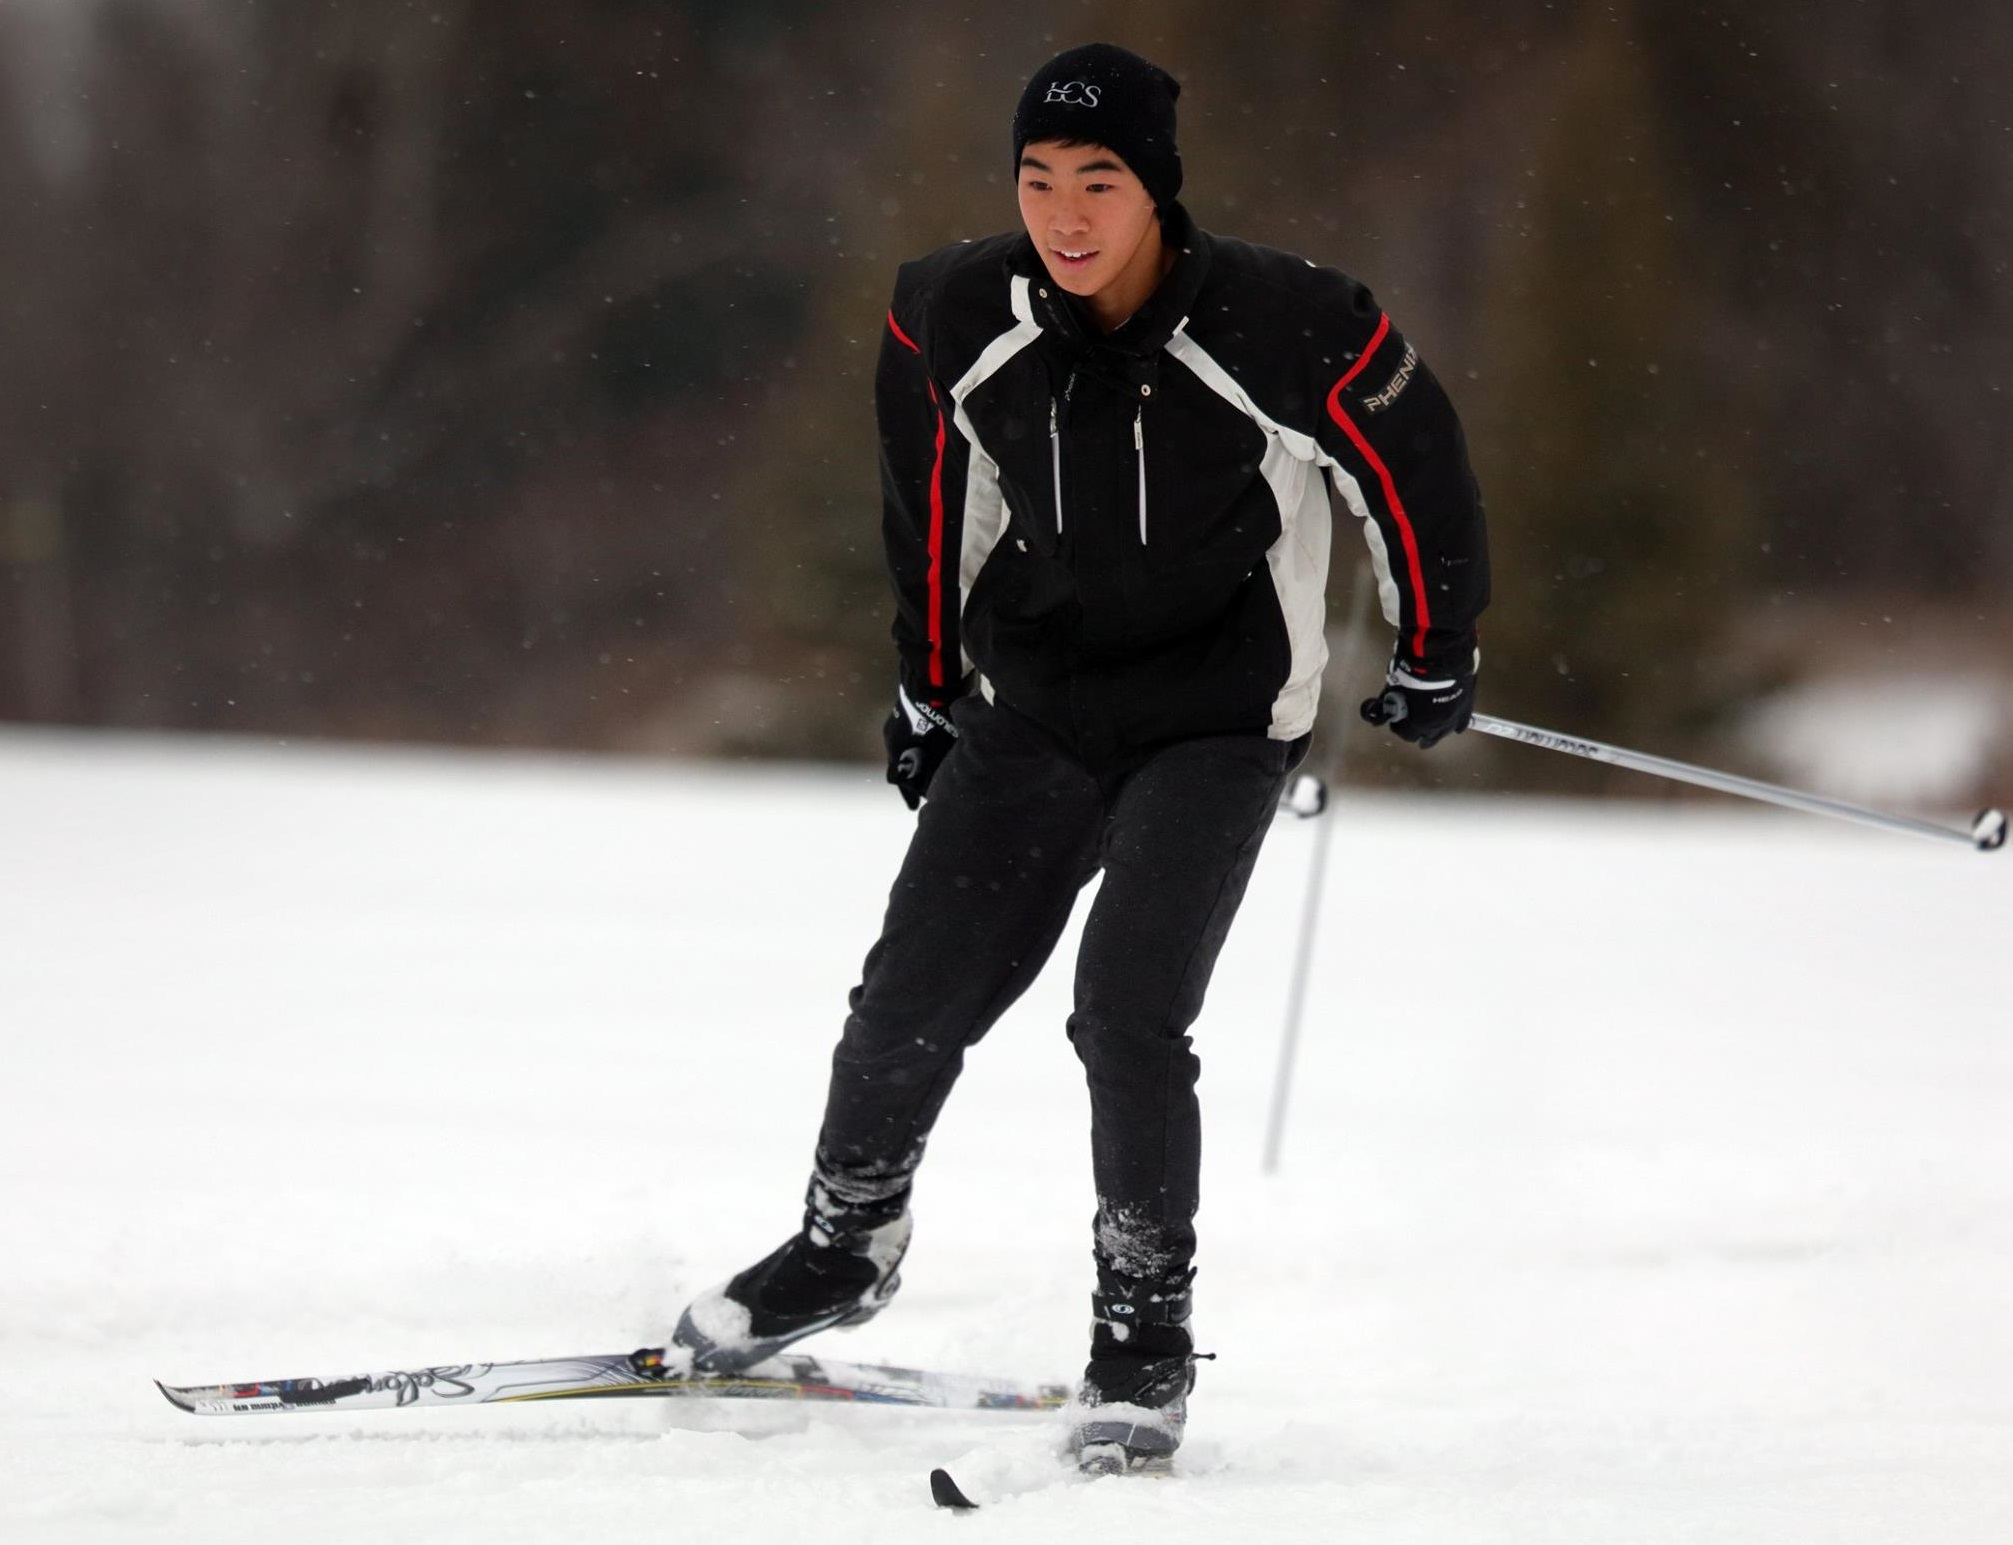 An LCS student on the Nordic Ski Team enjoys the fresh snowfall